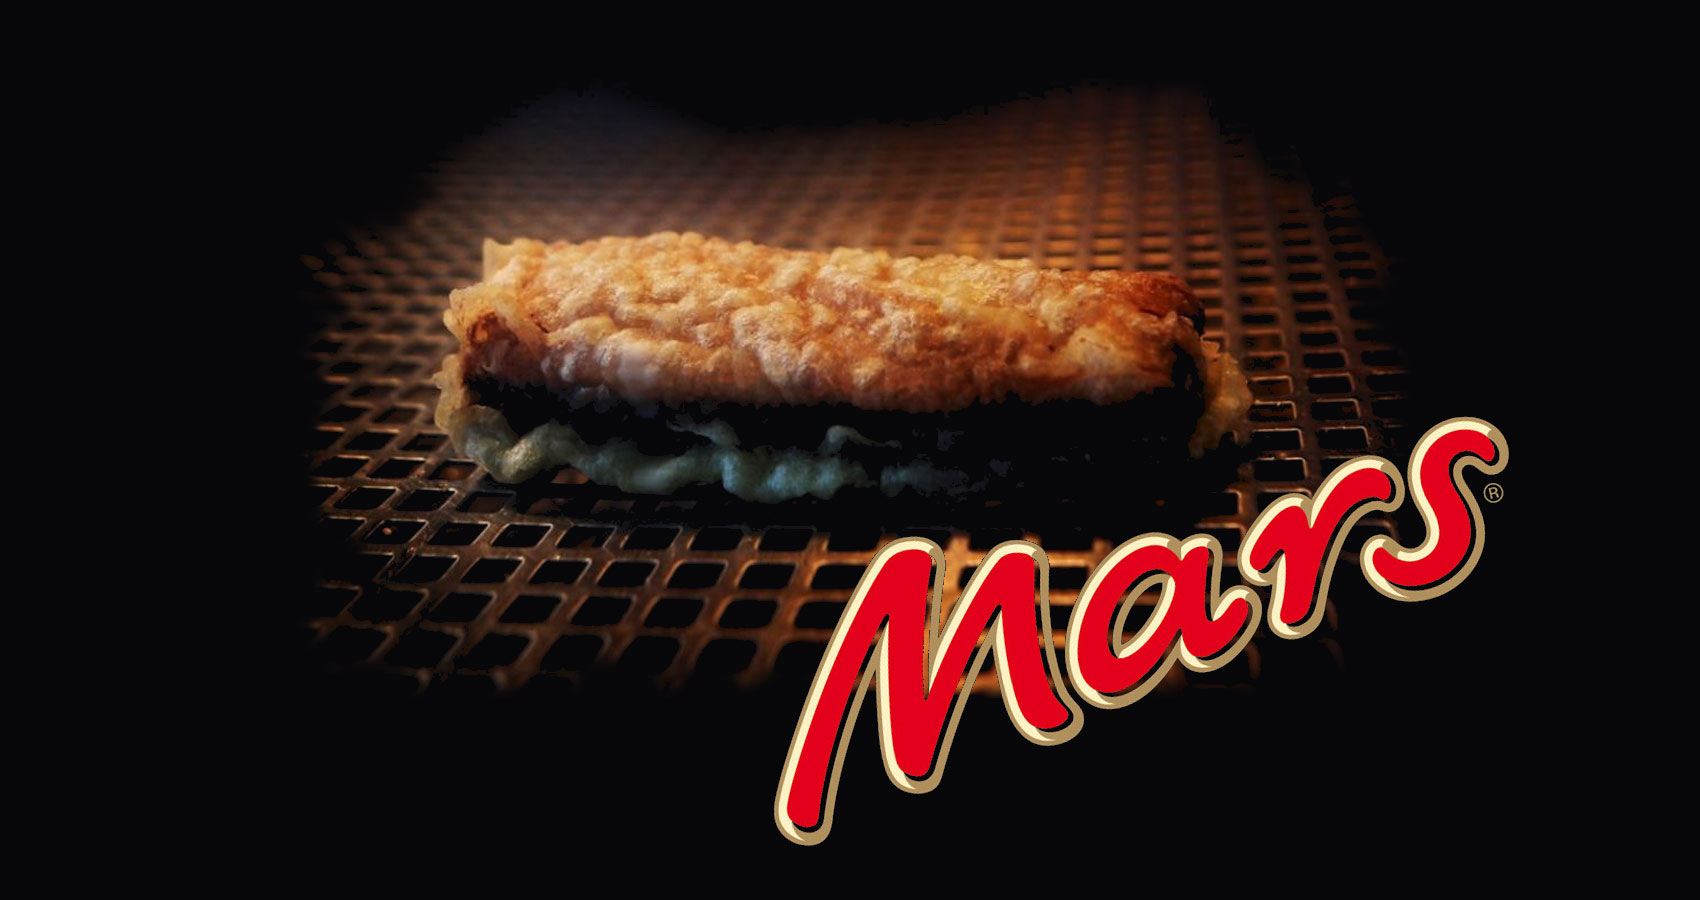 Deep Fried Mars by Rania M M Watts at Spillwords.com